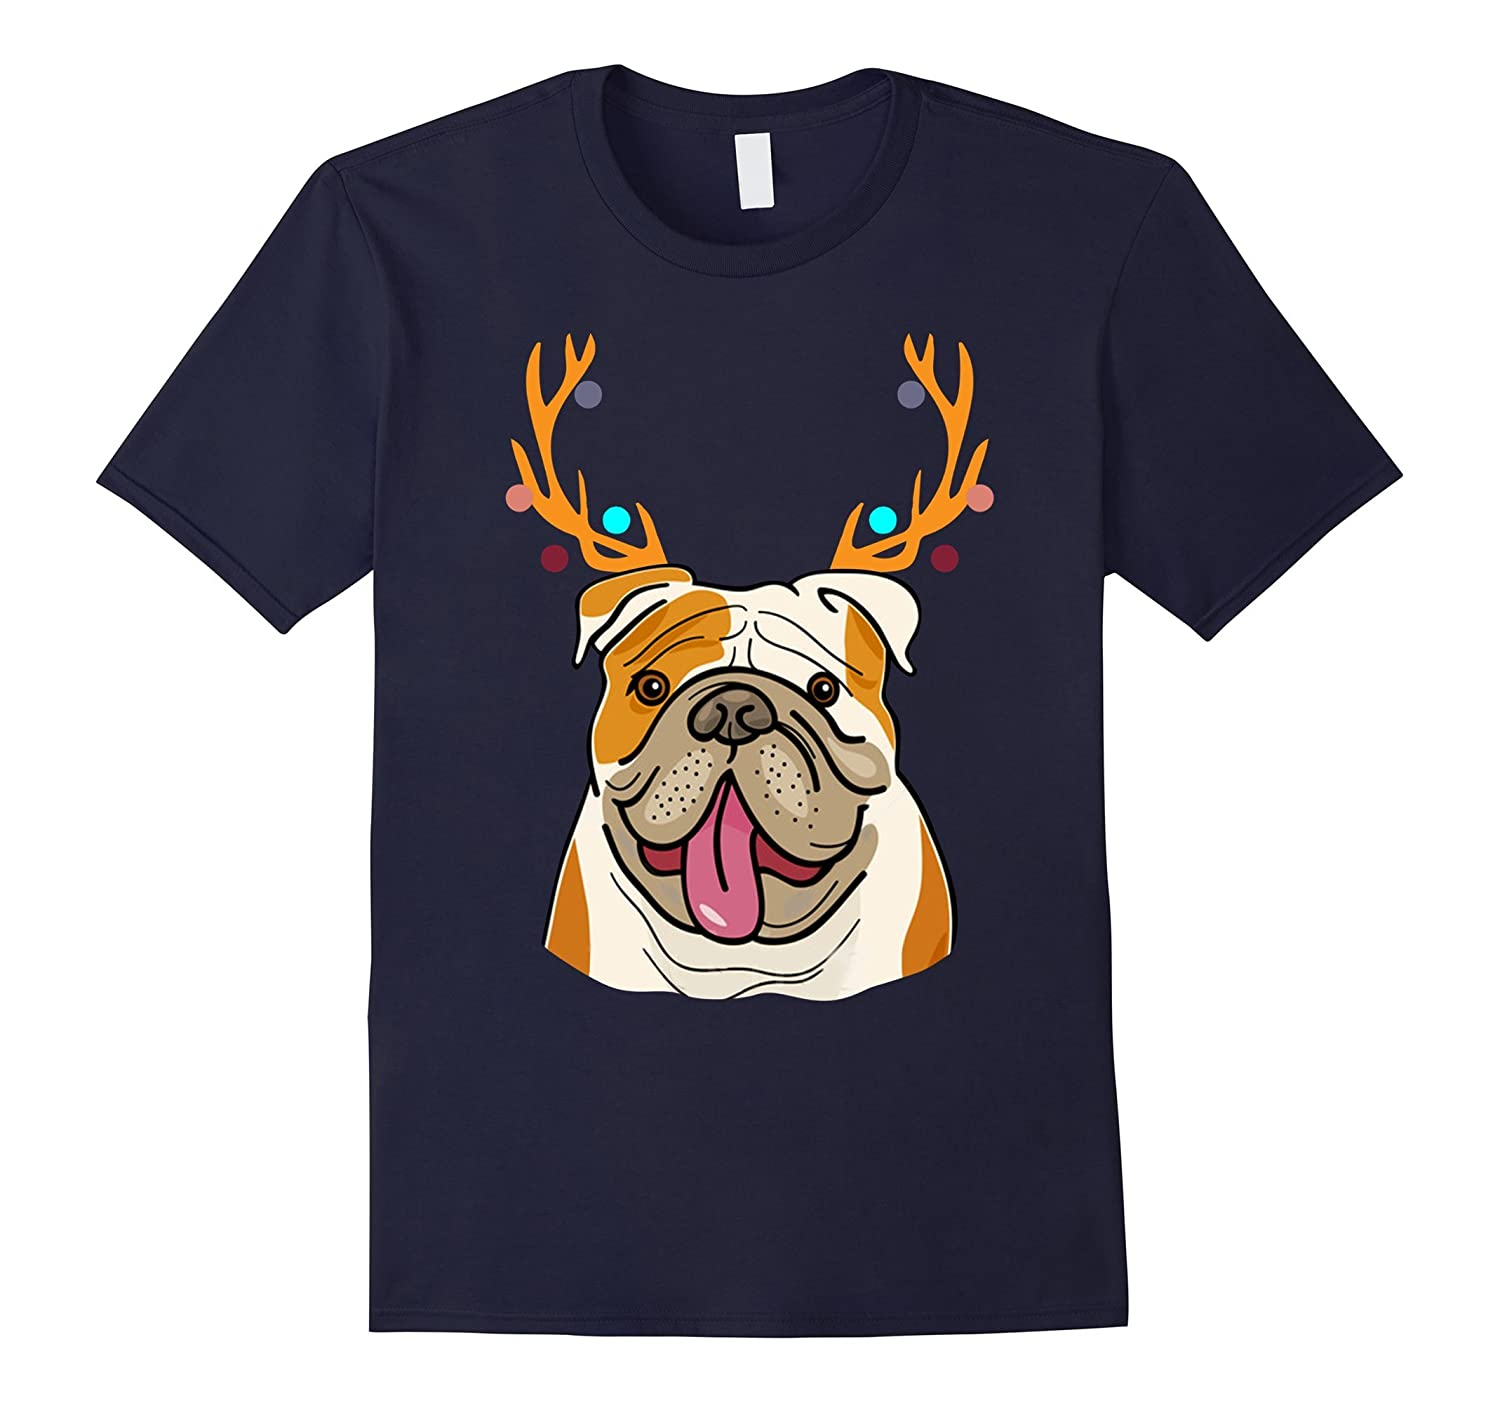 XMAS Funny Bulldogs with Antlers Christmas T Shirt Xmas Tee-TH